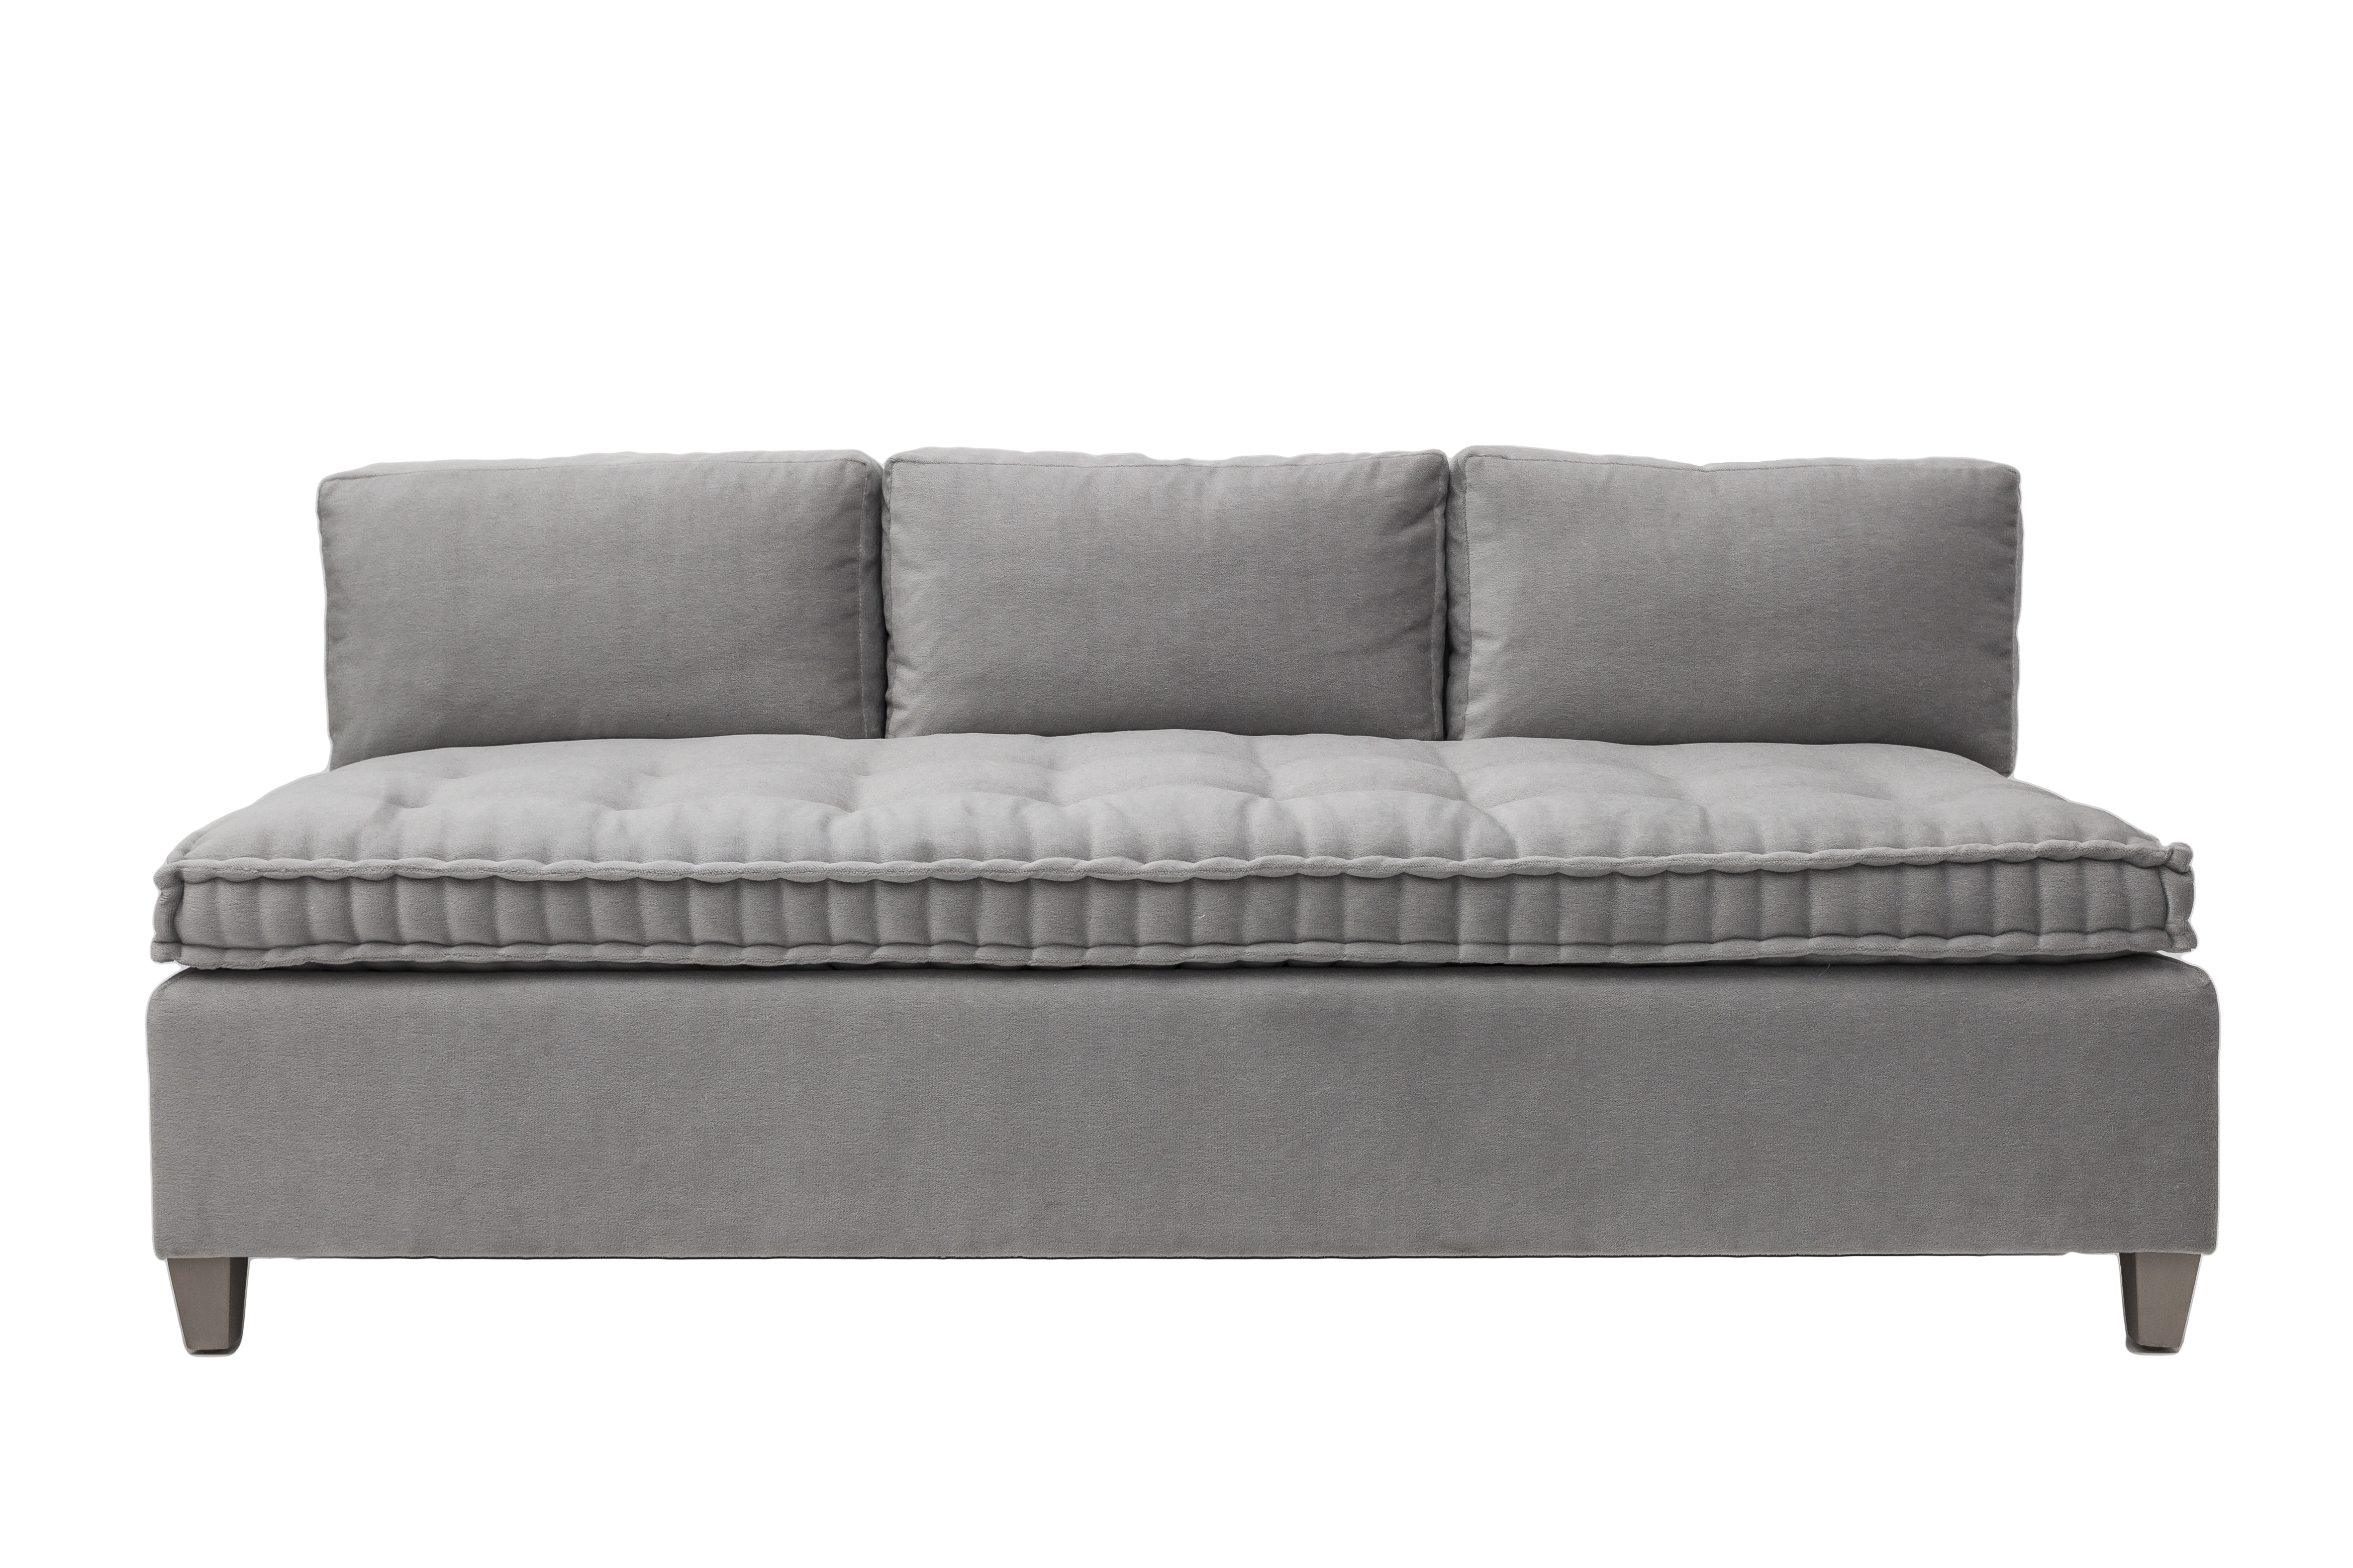 Couch back view png. Baxter sofa contemporary sofas